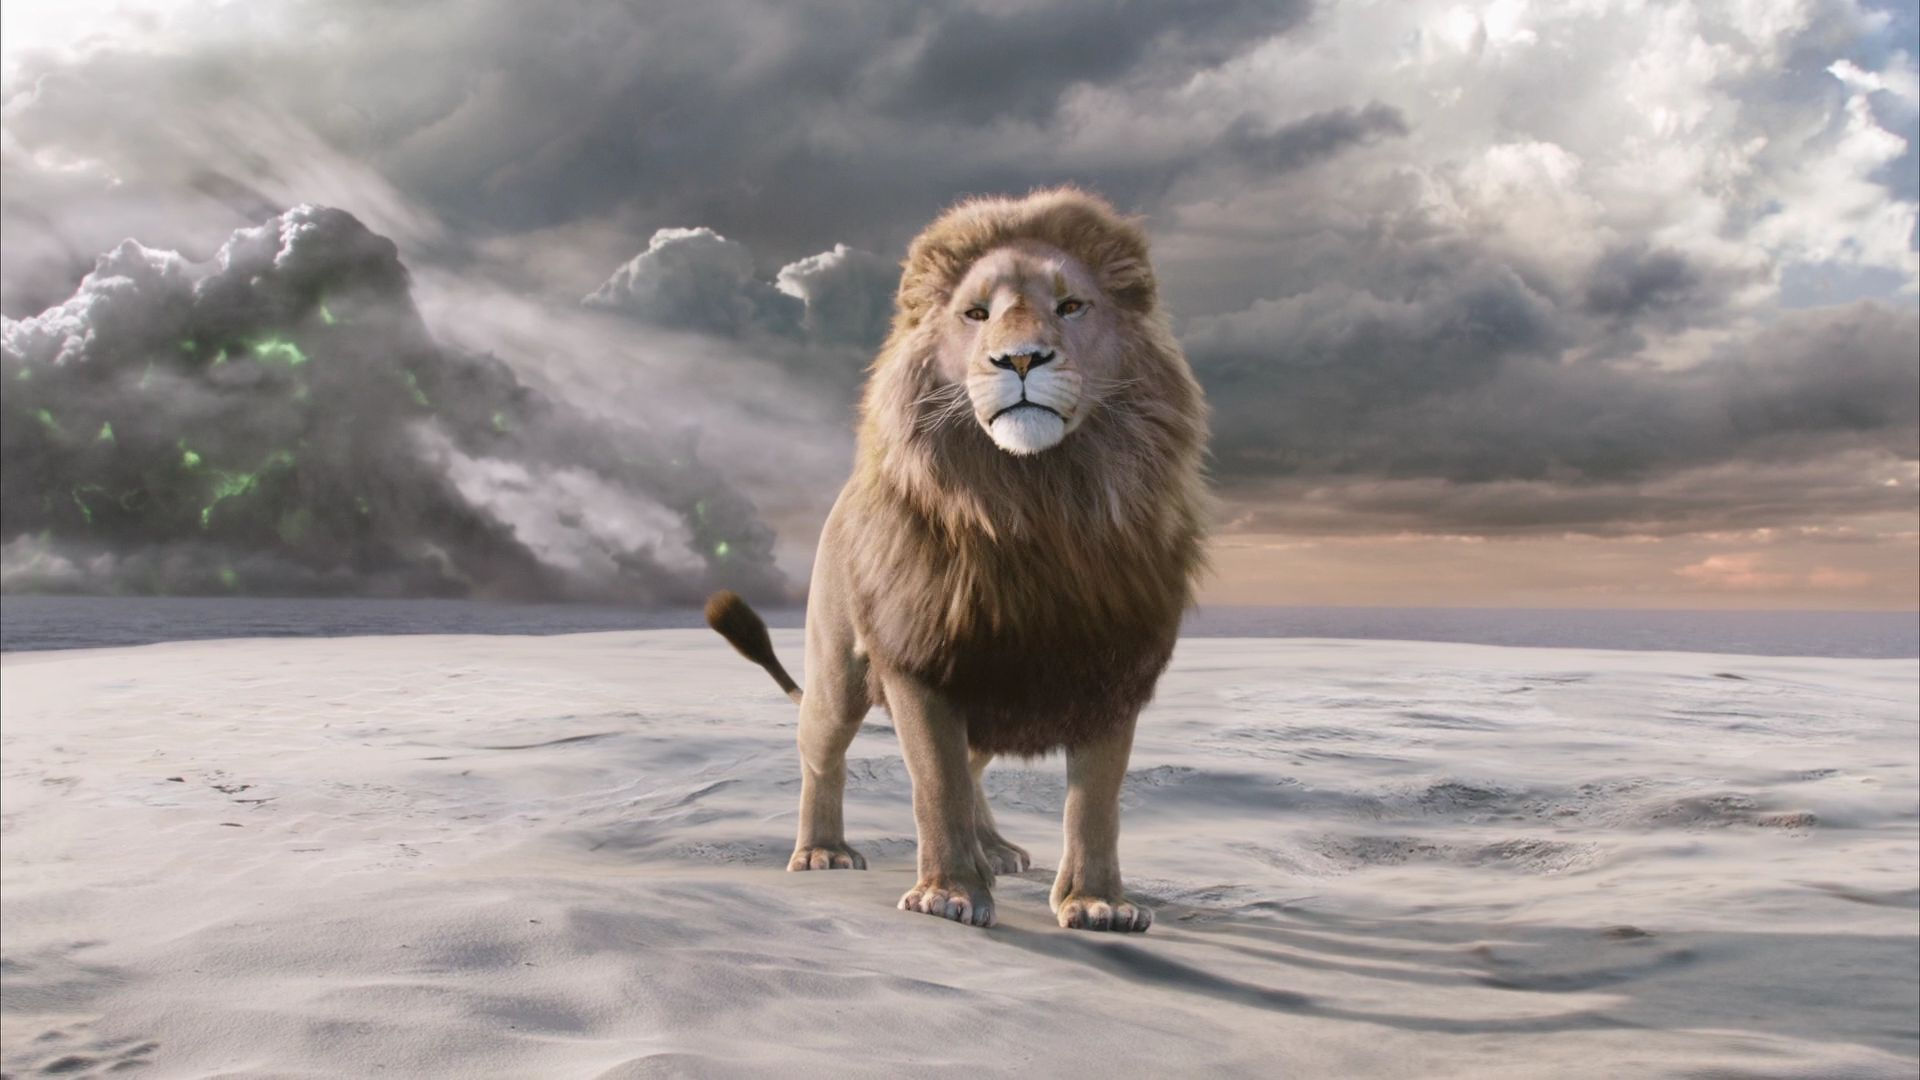 Narnia Aslan Wallpaper | HD Wallpapers | Pinterest | Hd wallpaper ... for Narnia Aslan Wallpaper  555kxo